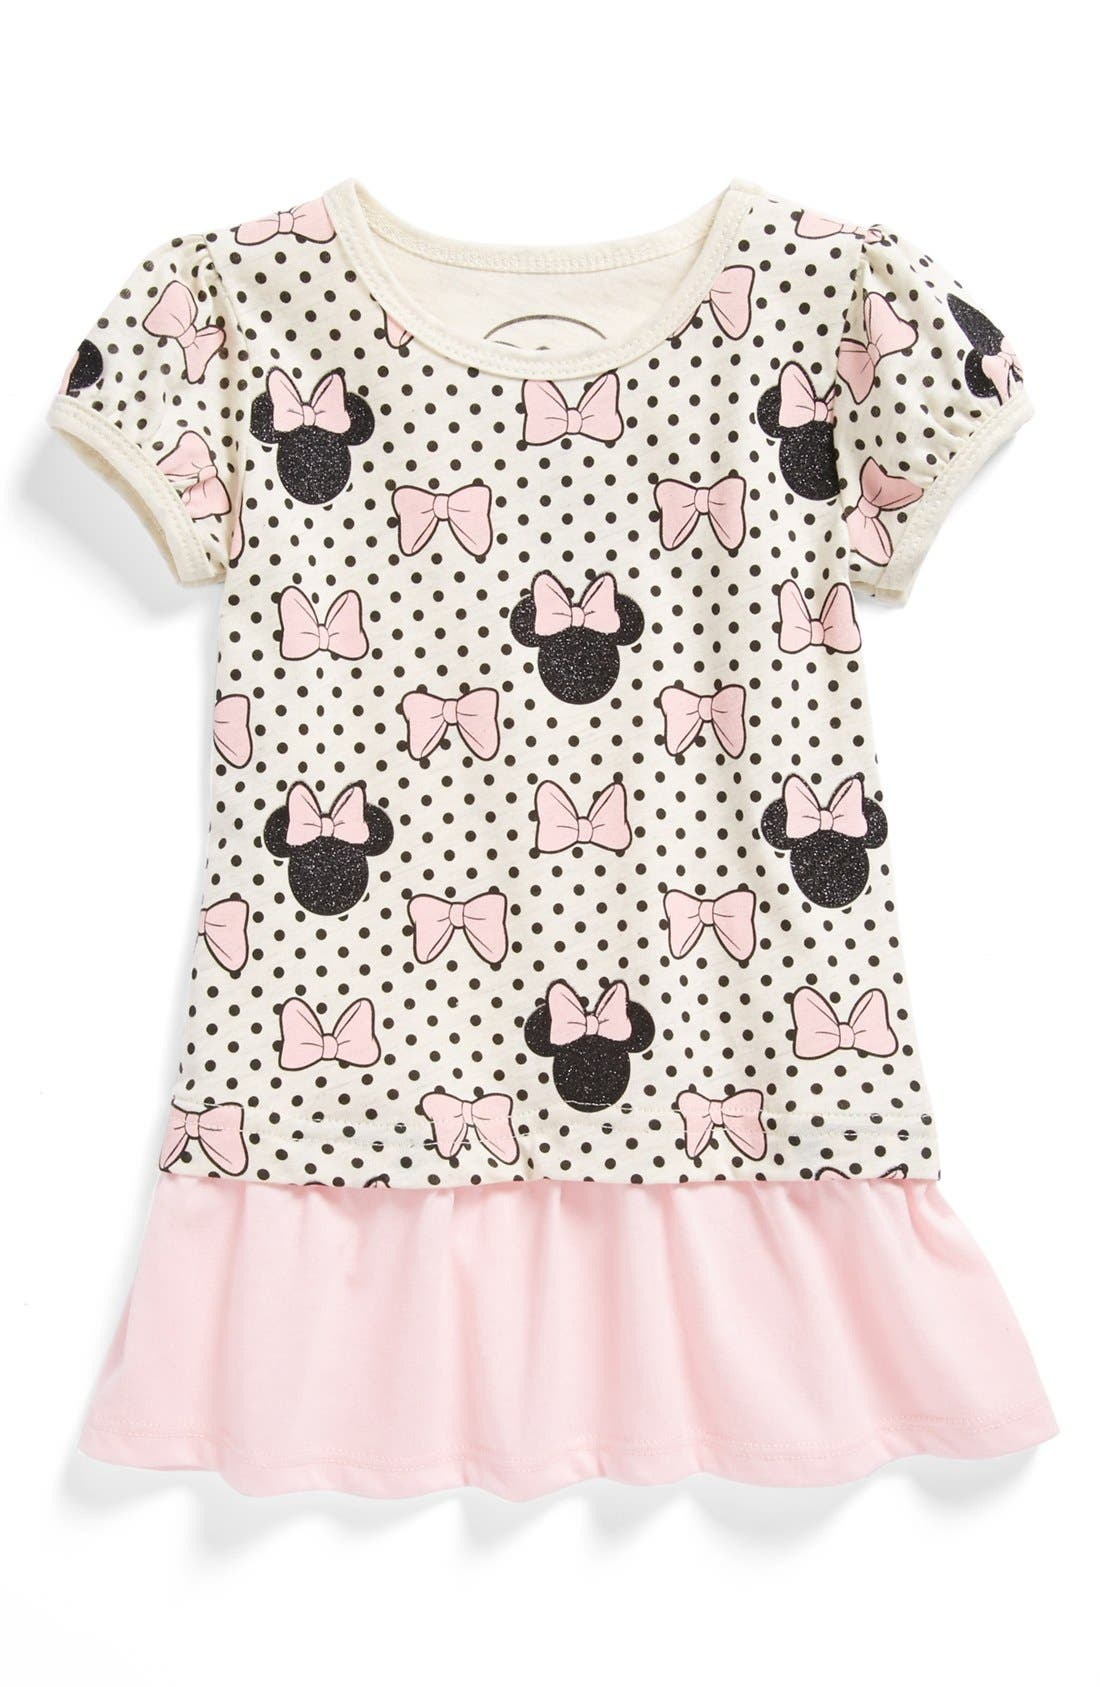 Alternate Image 1 Selected - Mighty Fine 'Minnie' Polka Dot Peplum Tee (Little Girls)